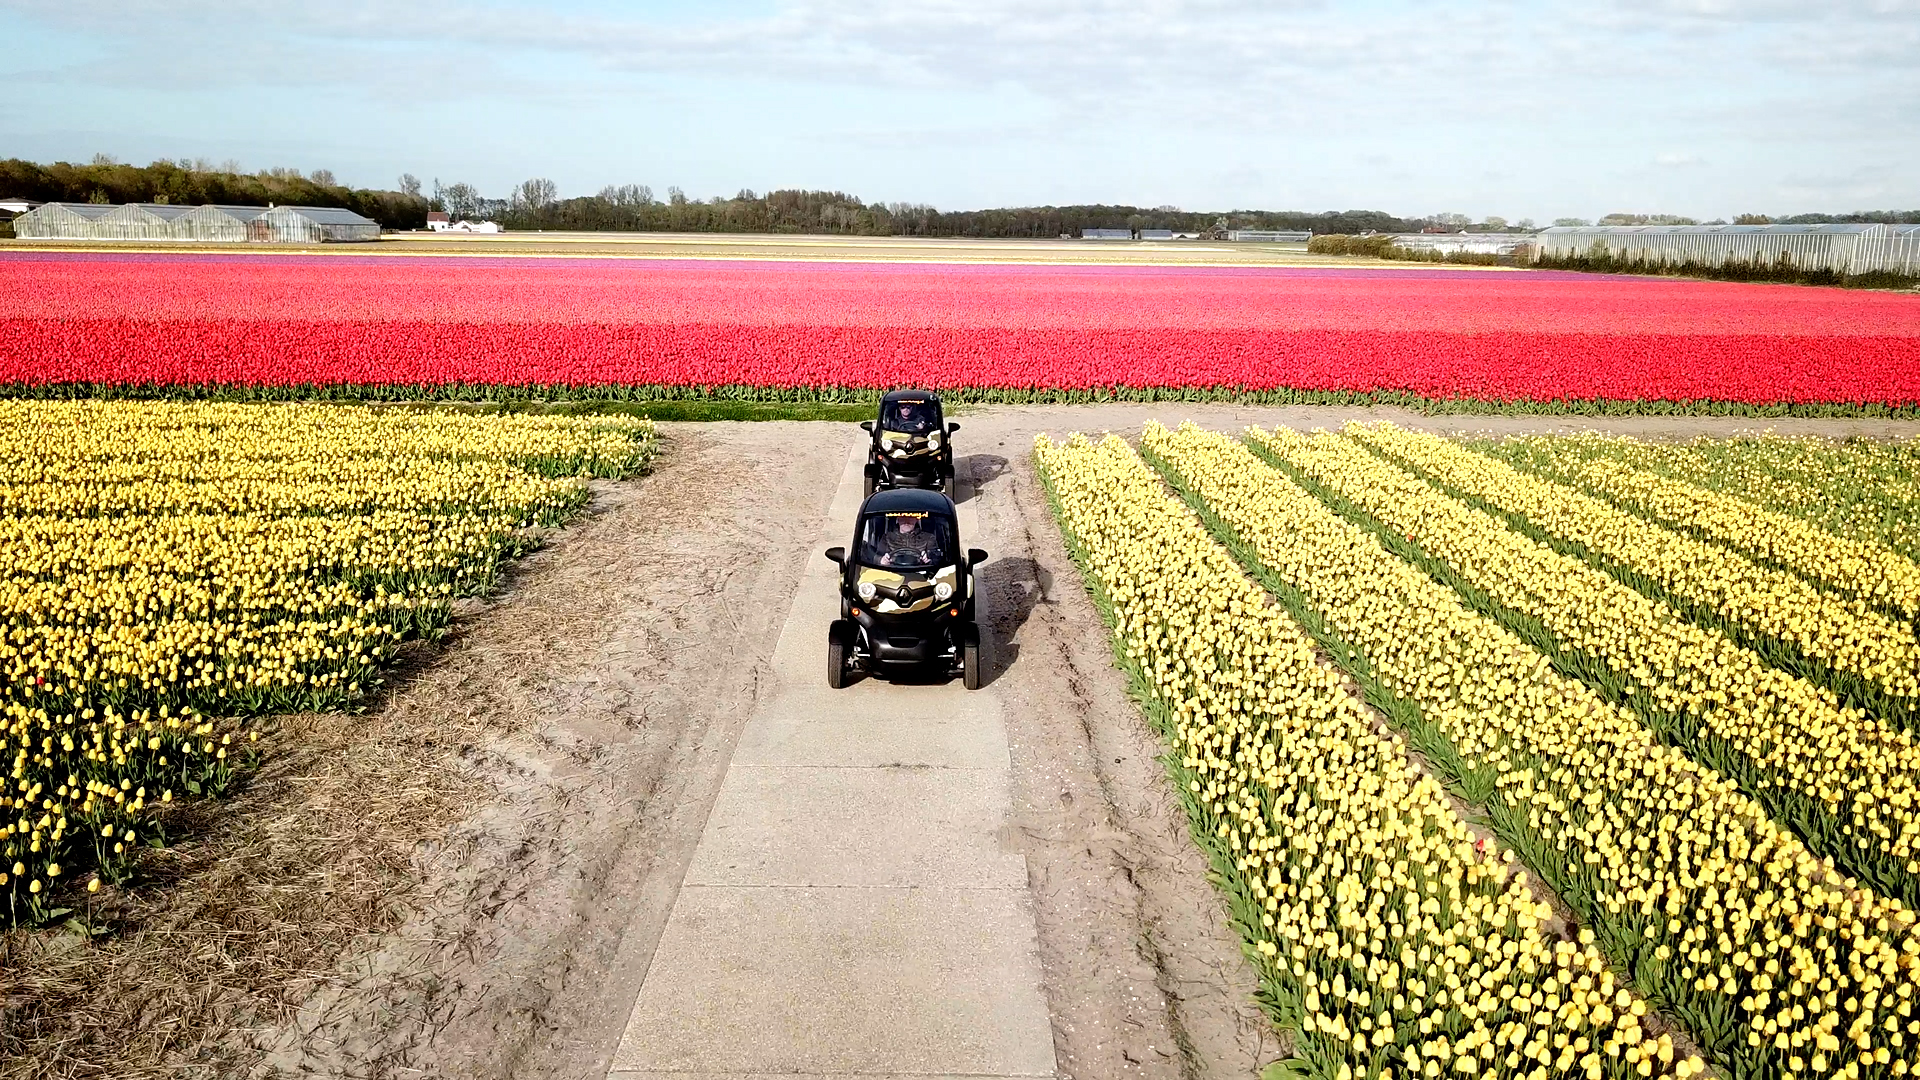 Flowerfield Experience with Electric Vehicle (GPS and Audioguide included)